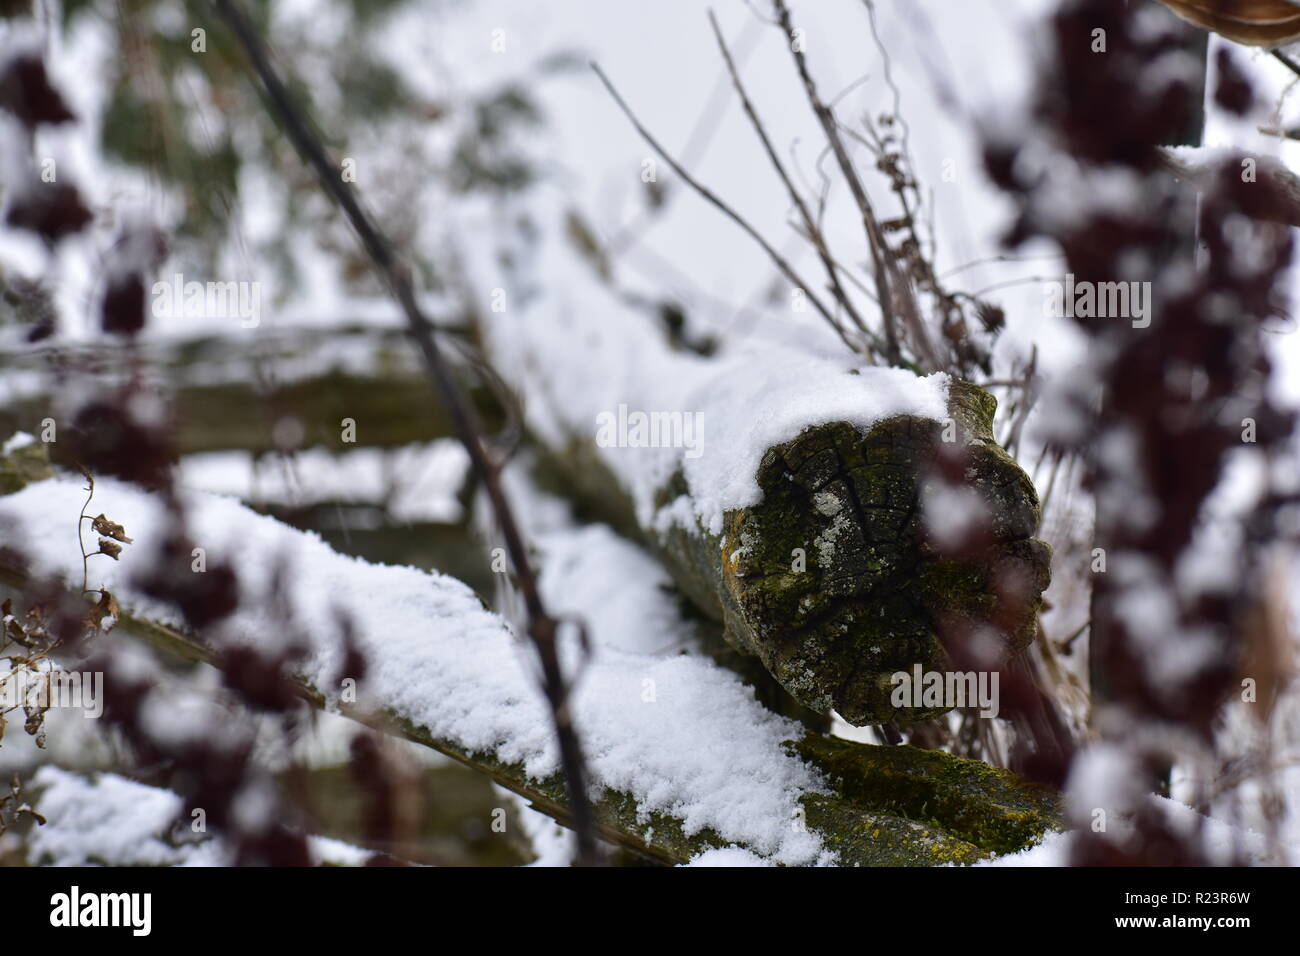 Snow covered cedar log. The snow was still falling lightly. The air was cold. Michigan weather can be unpredictable and beautiful at the same time. - Stock Image